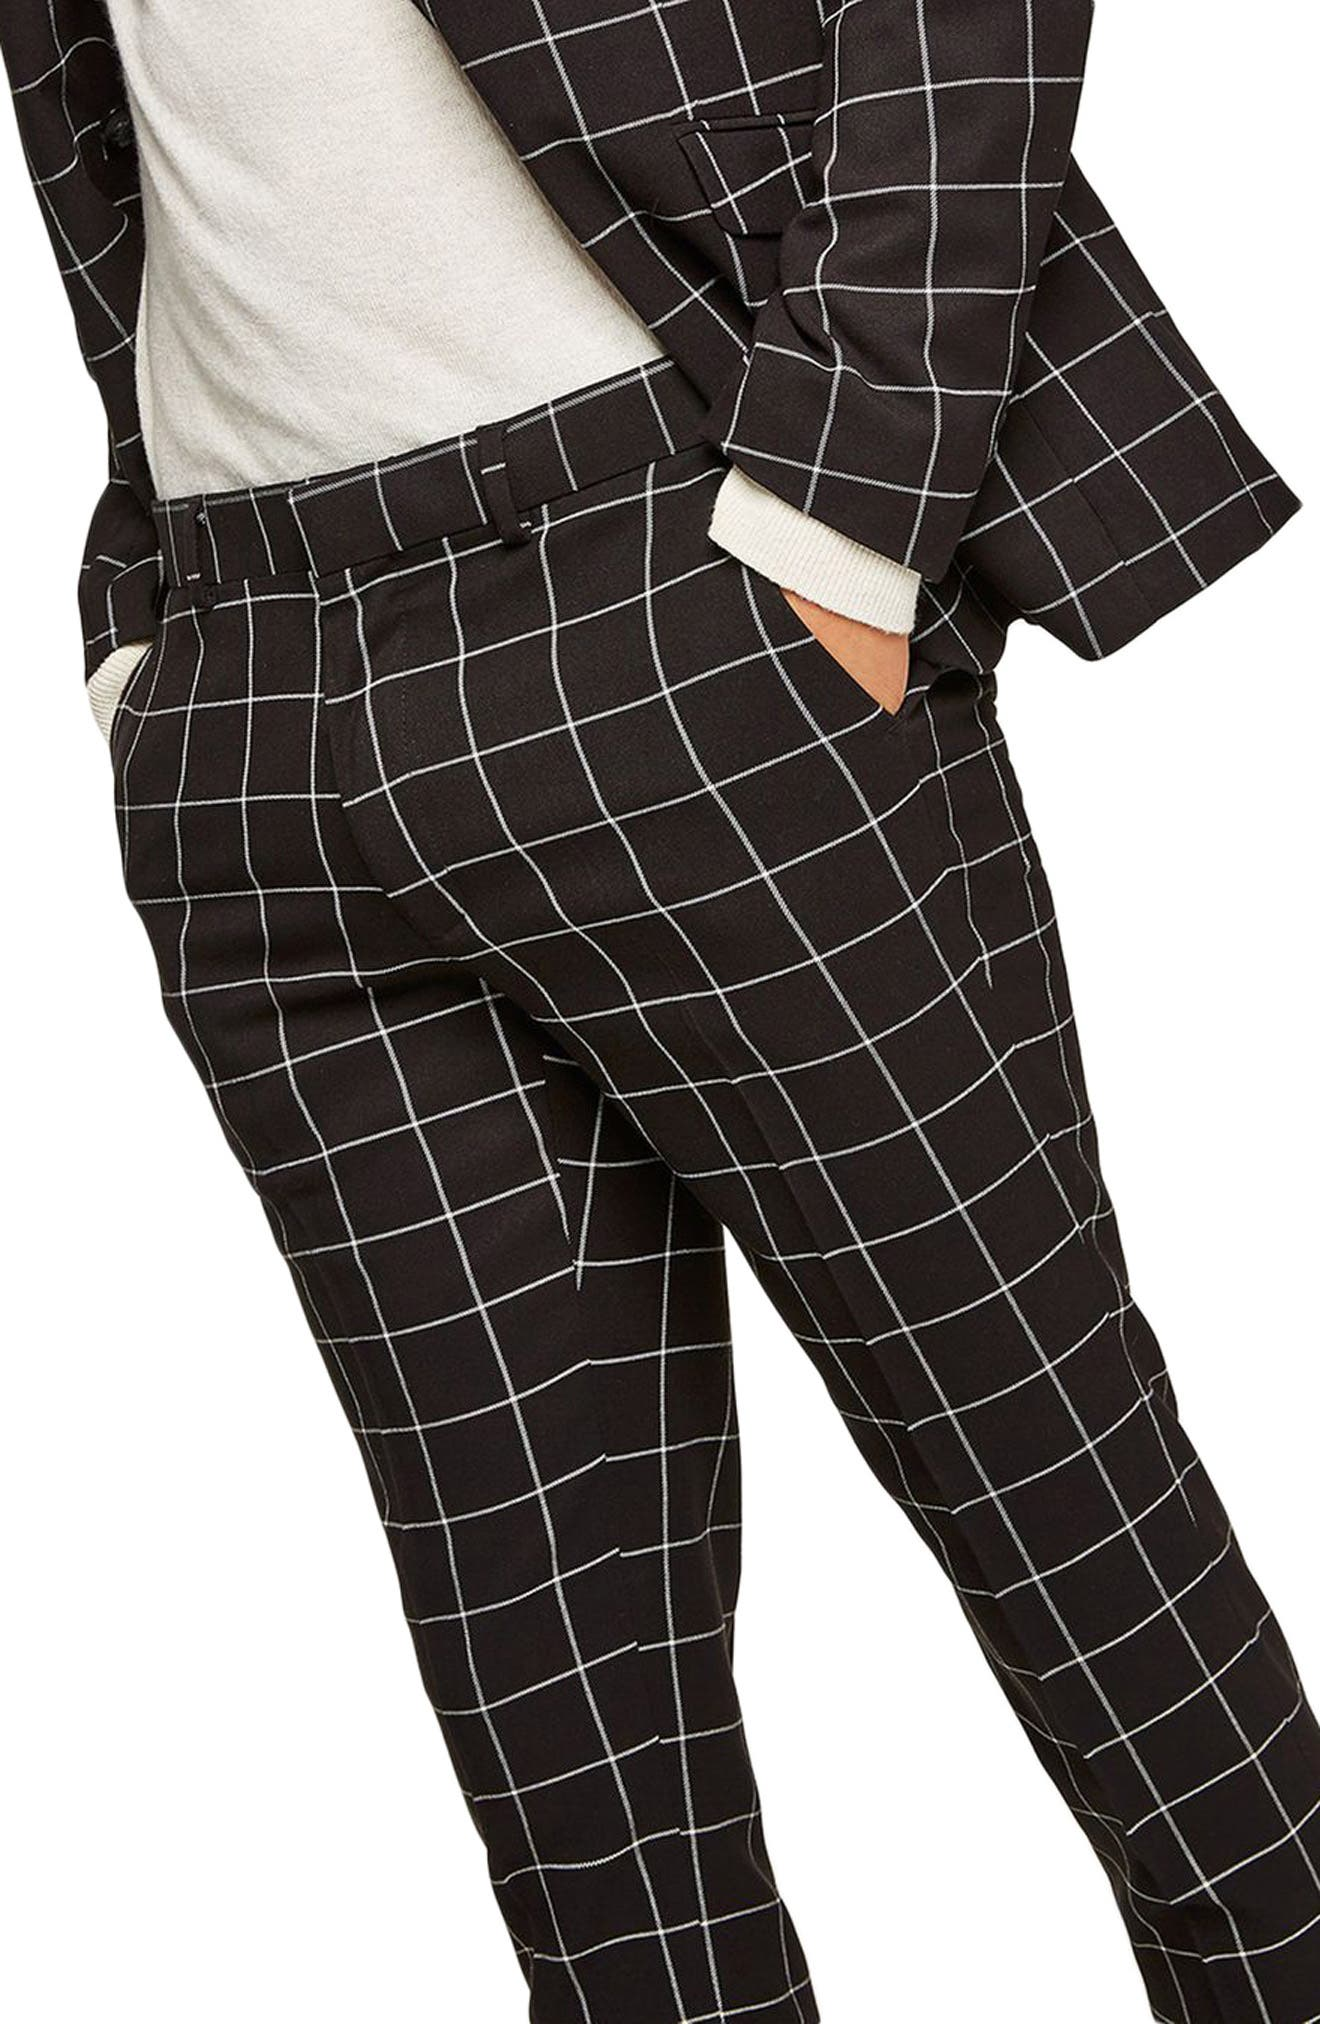 Skinny Fit Windowpane Suit Trousers,                             Alternate thumbnail 3, color,                             001